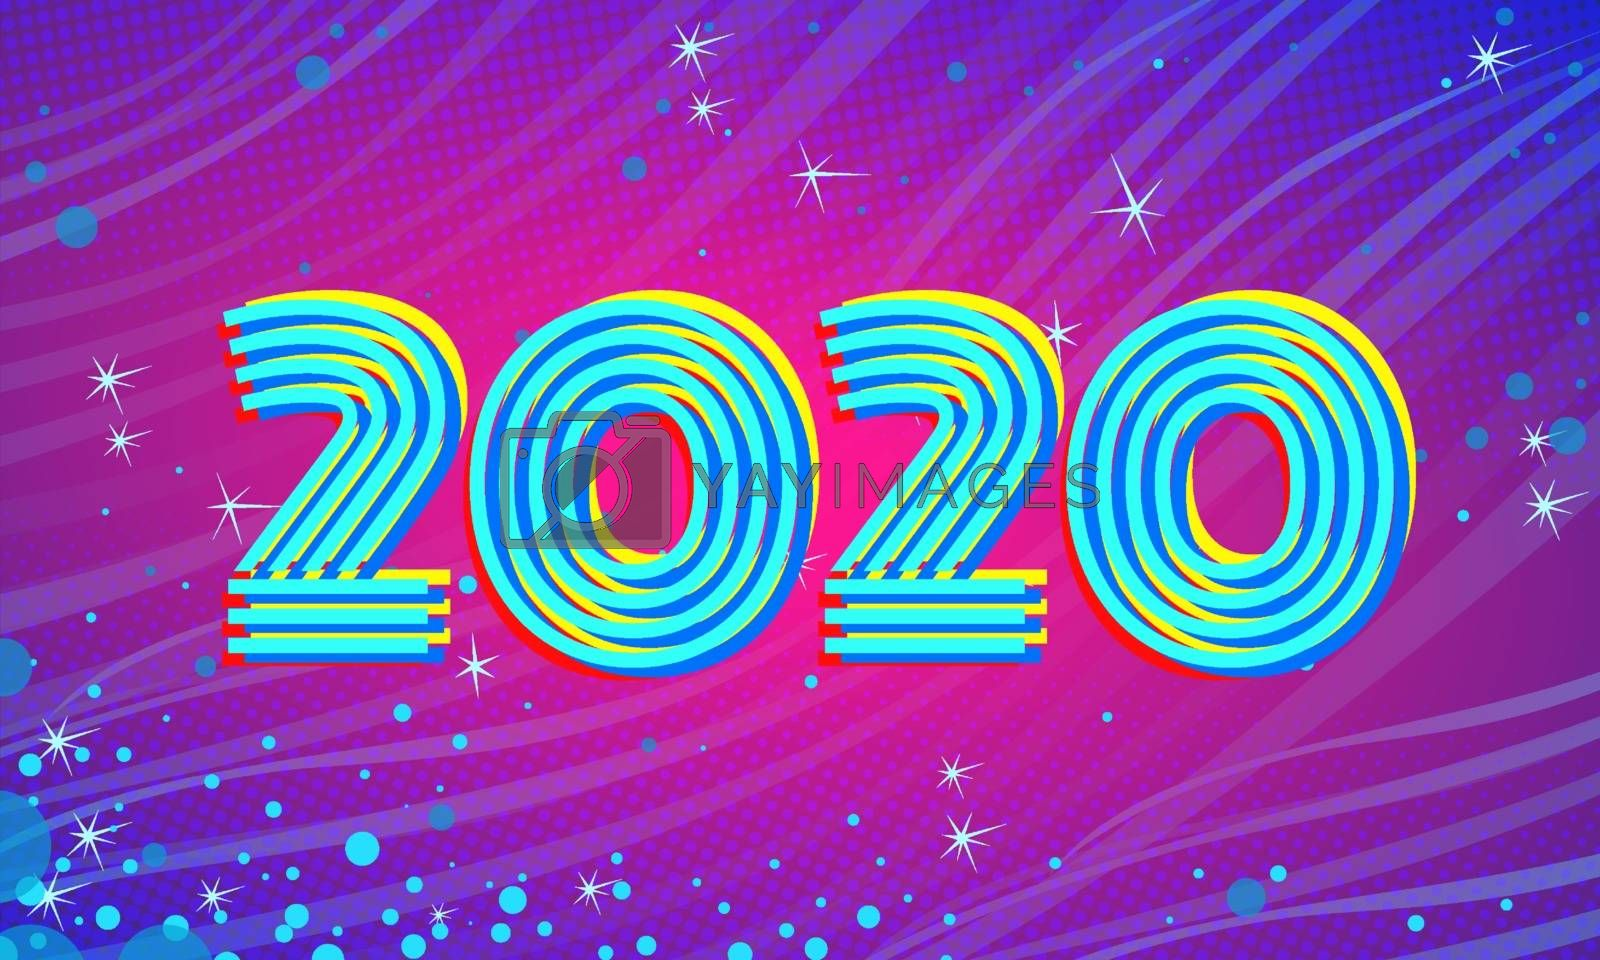 2020 Blue Magenta new year background. Comic cartoon pop art retro vector illustration drawing